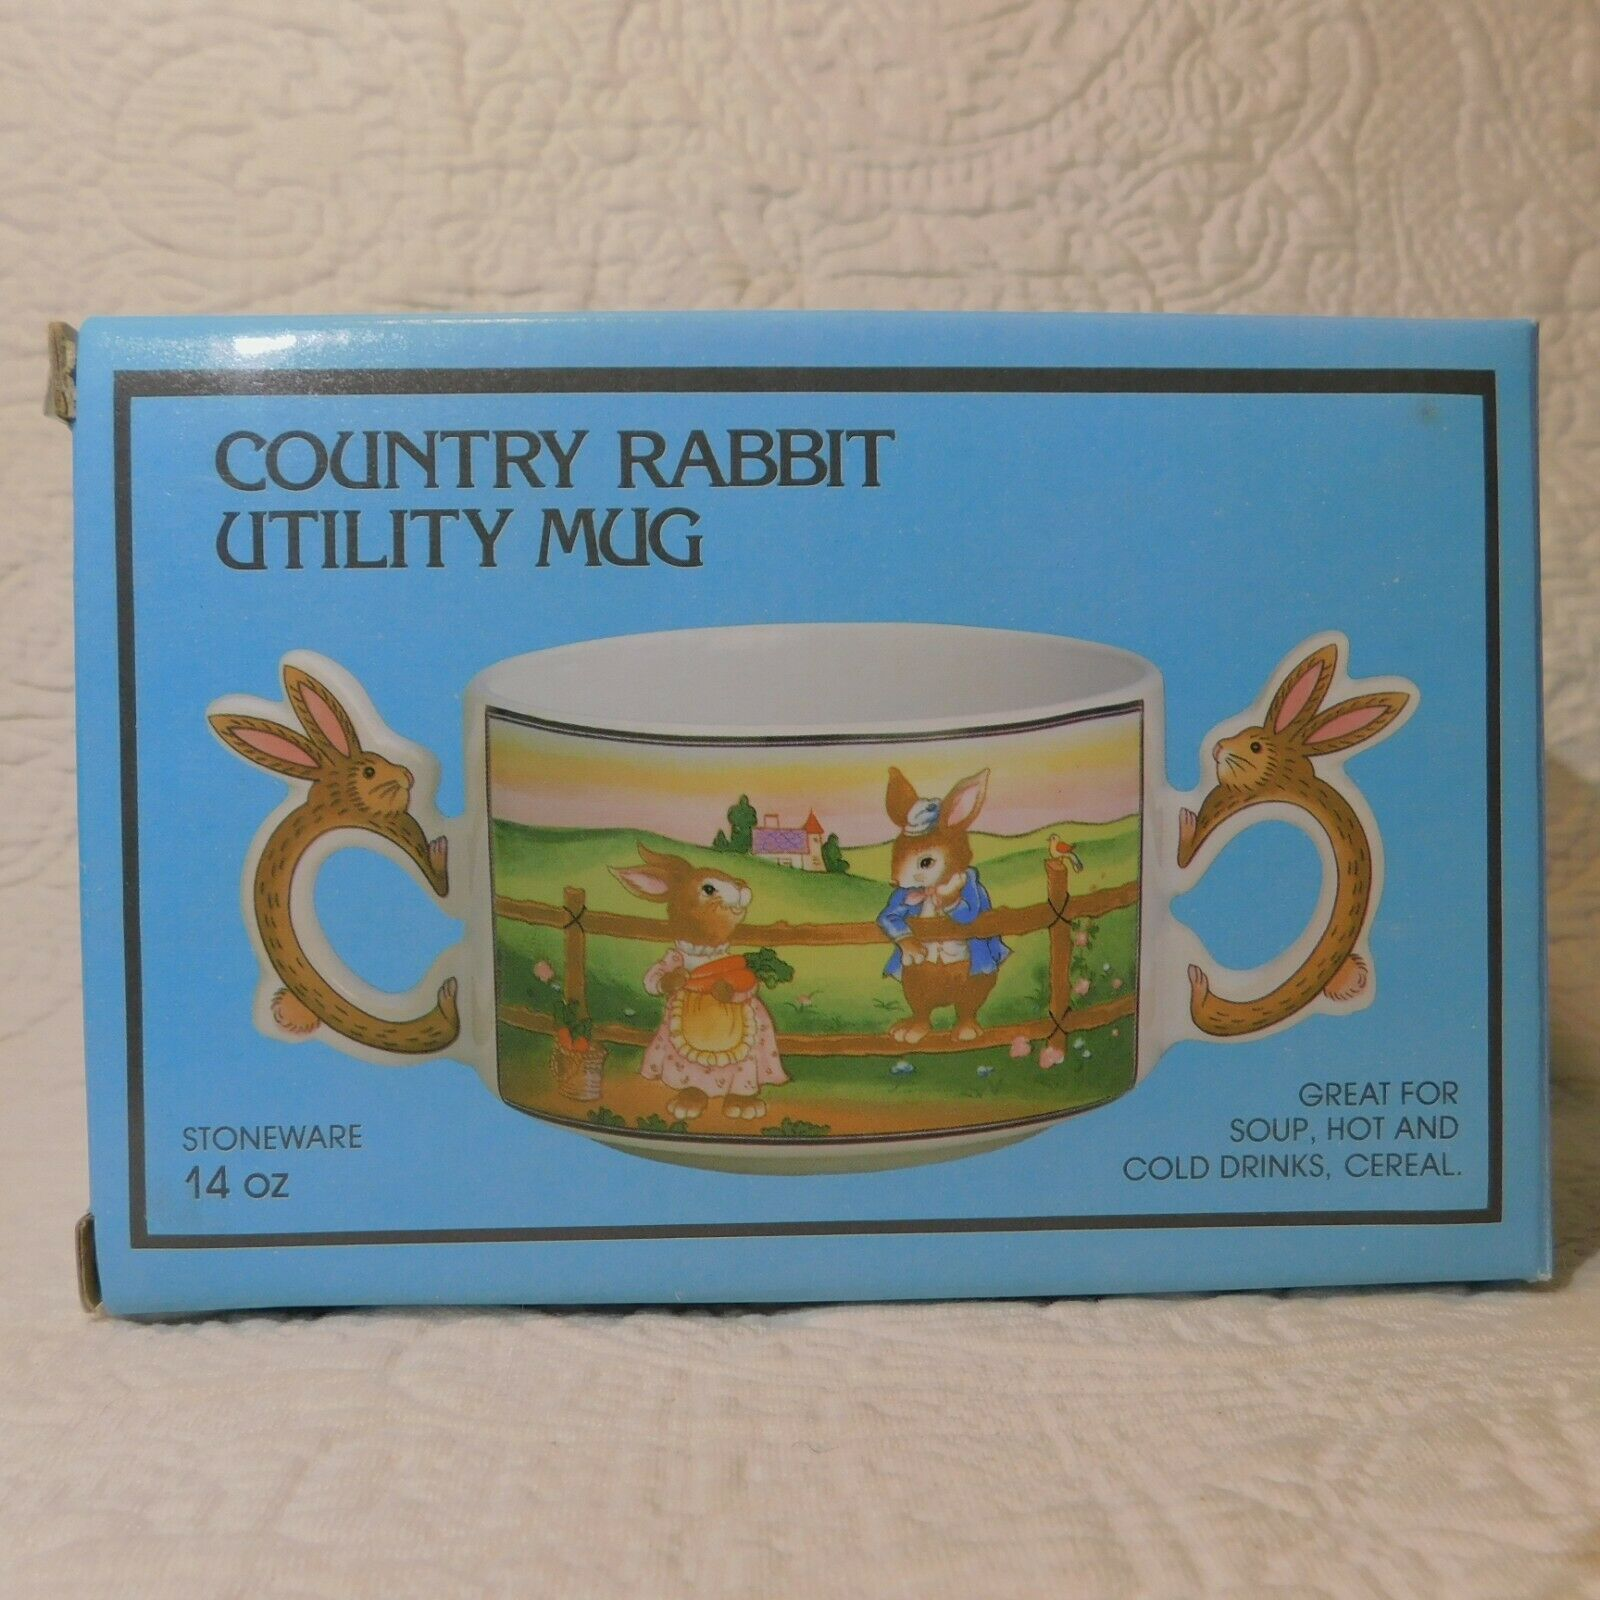 Lot of 2 Vintage 1988 COUNTRY BUNNY RABBIT Utility Mug DOUBLE HANDLE BOWLS Action Industries 22272 - фотография #2